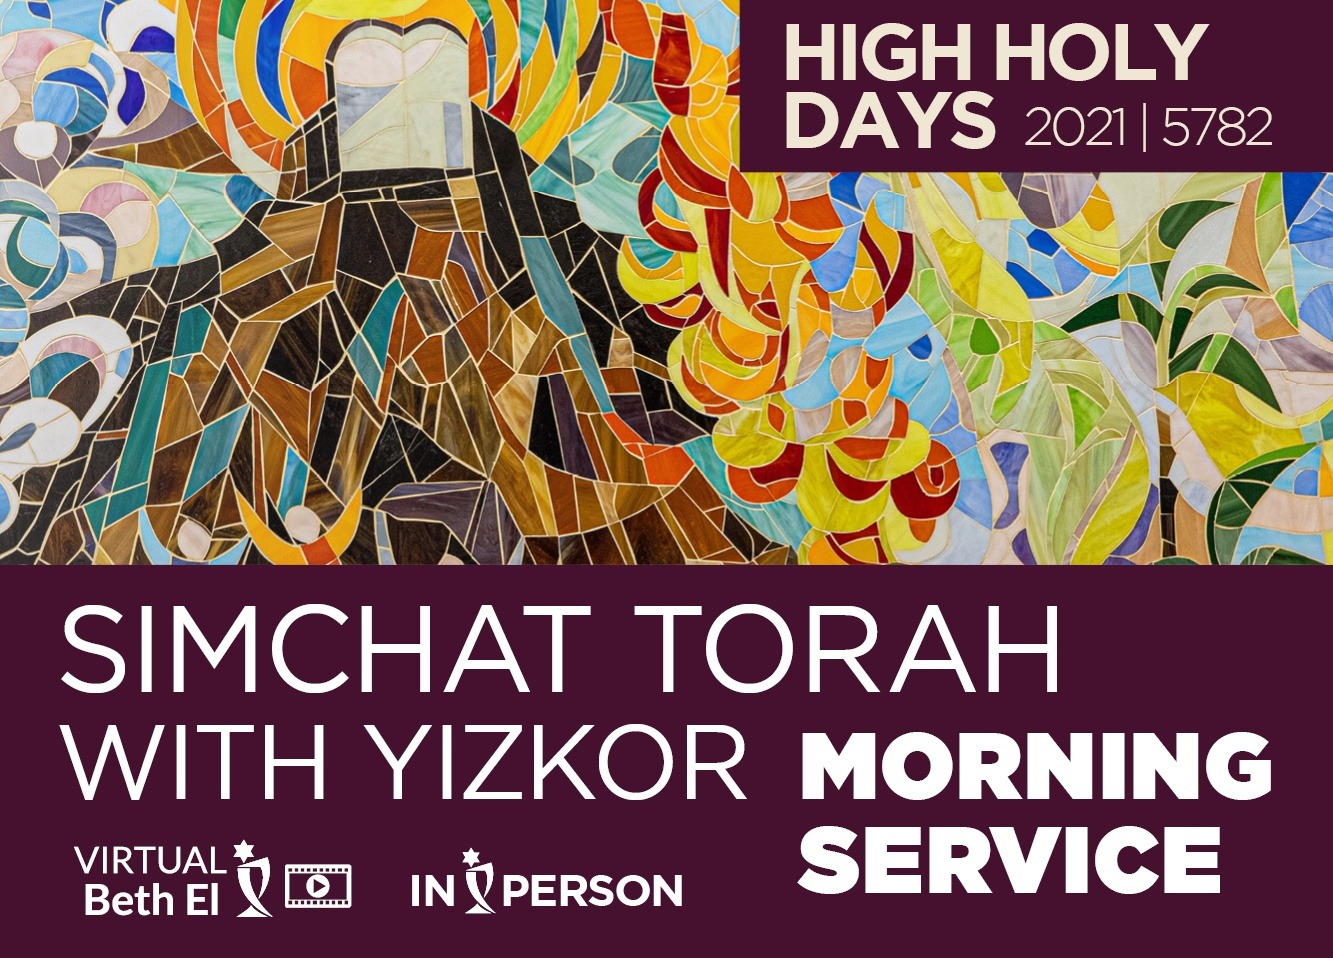 Simchat Torah Morning Service with Yizkor event graphic for Temple Beth El of Boca Raton